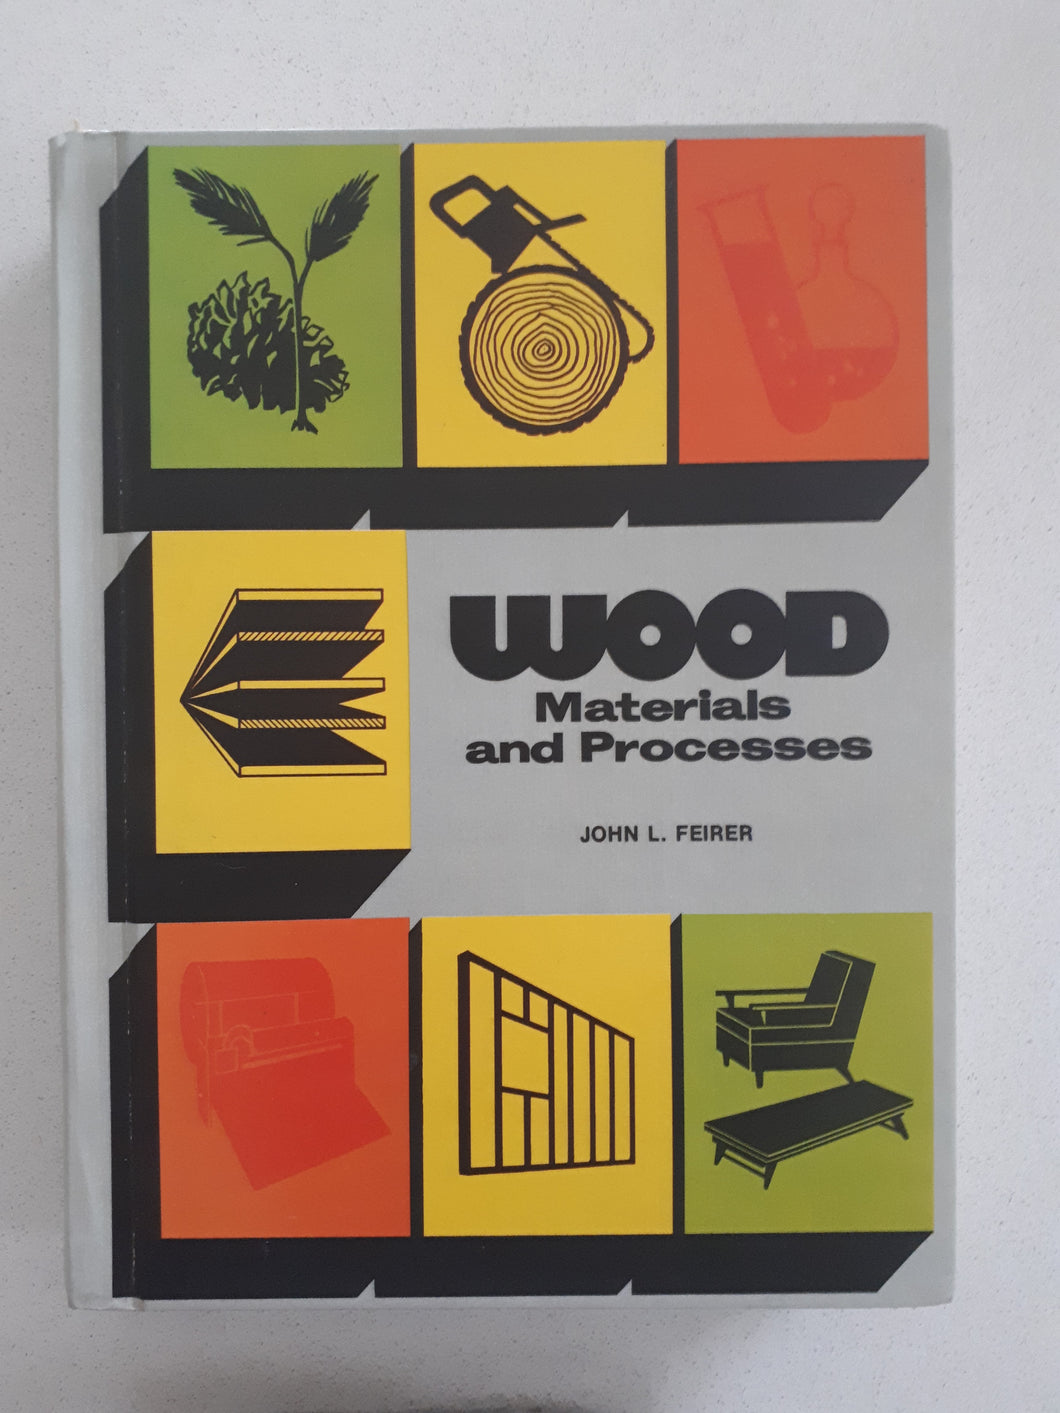 Wood Materials and Processes by John L. Feirer